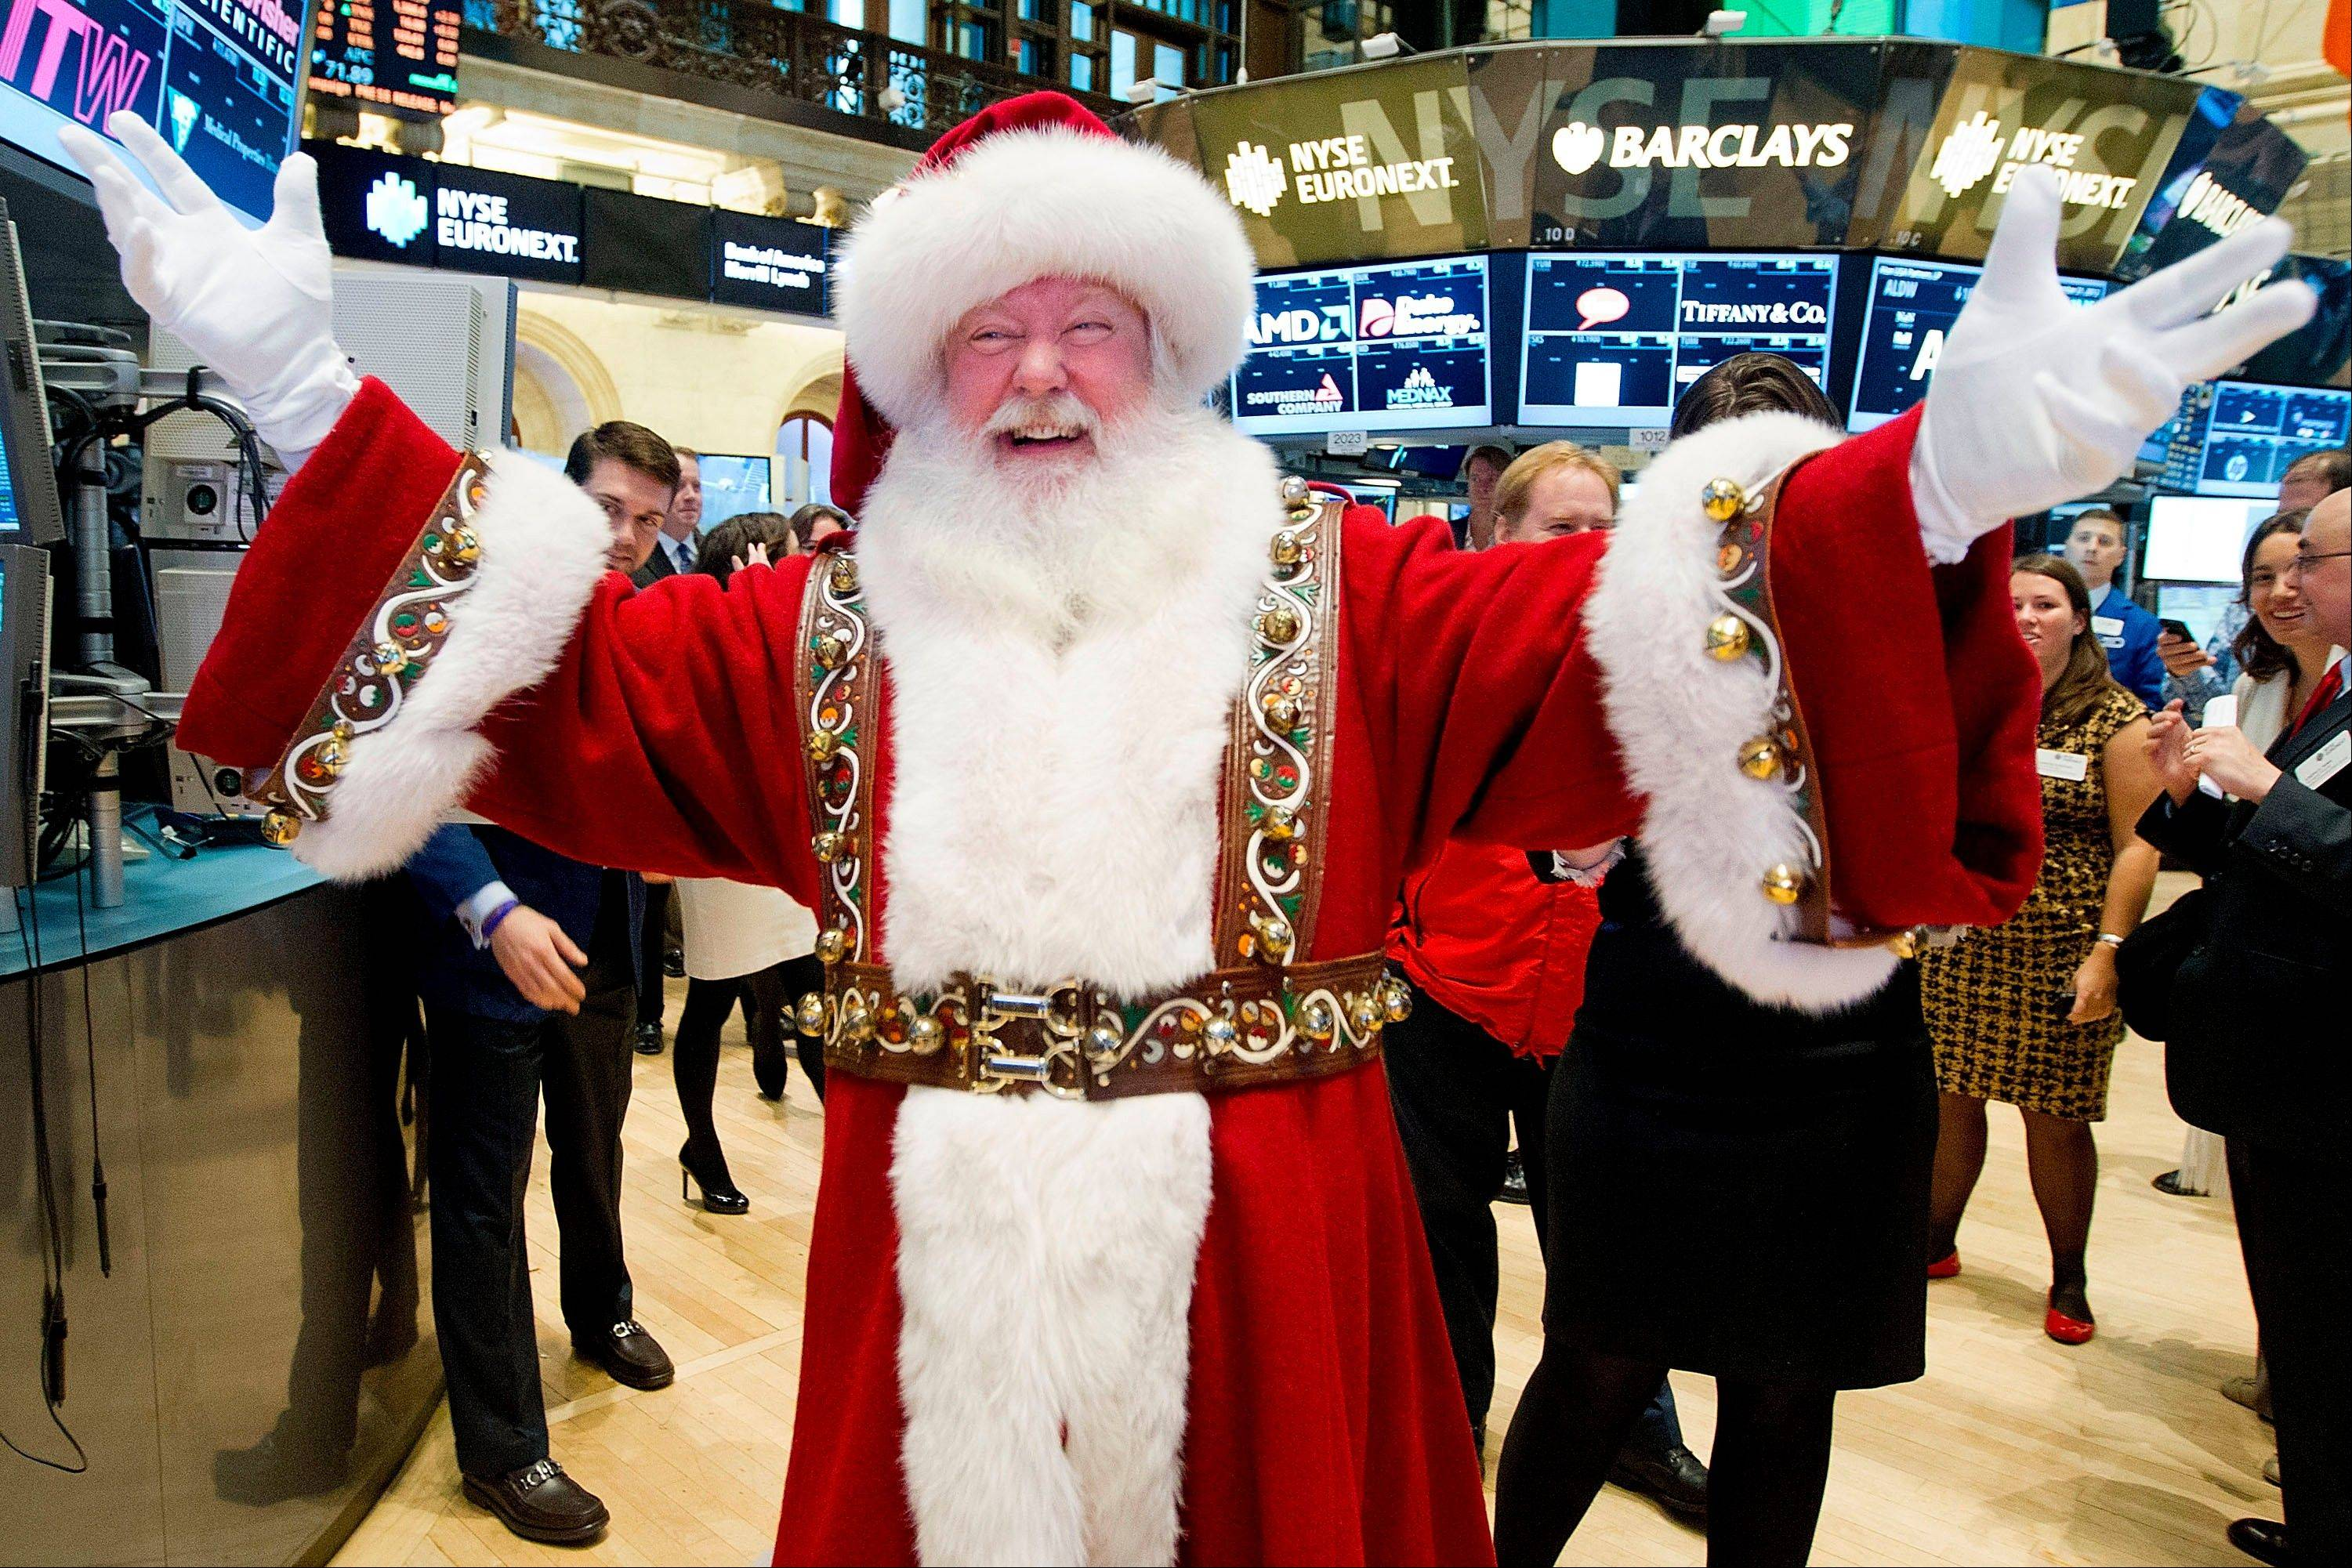 A man portraying Santa Claus visits the trading floor of the New York Stock Exchange before he participated in opening bell ceremonies featuring the Macy's Thanksgiving Day Parade.